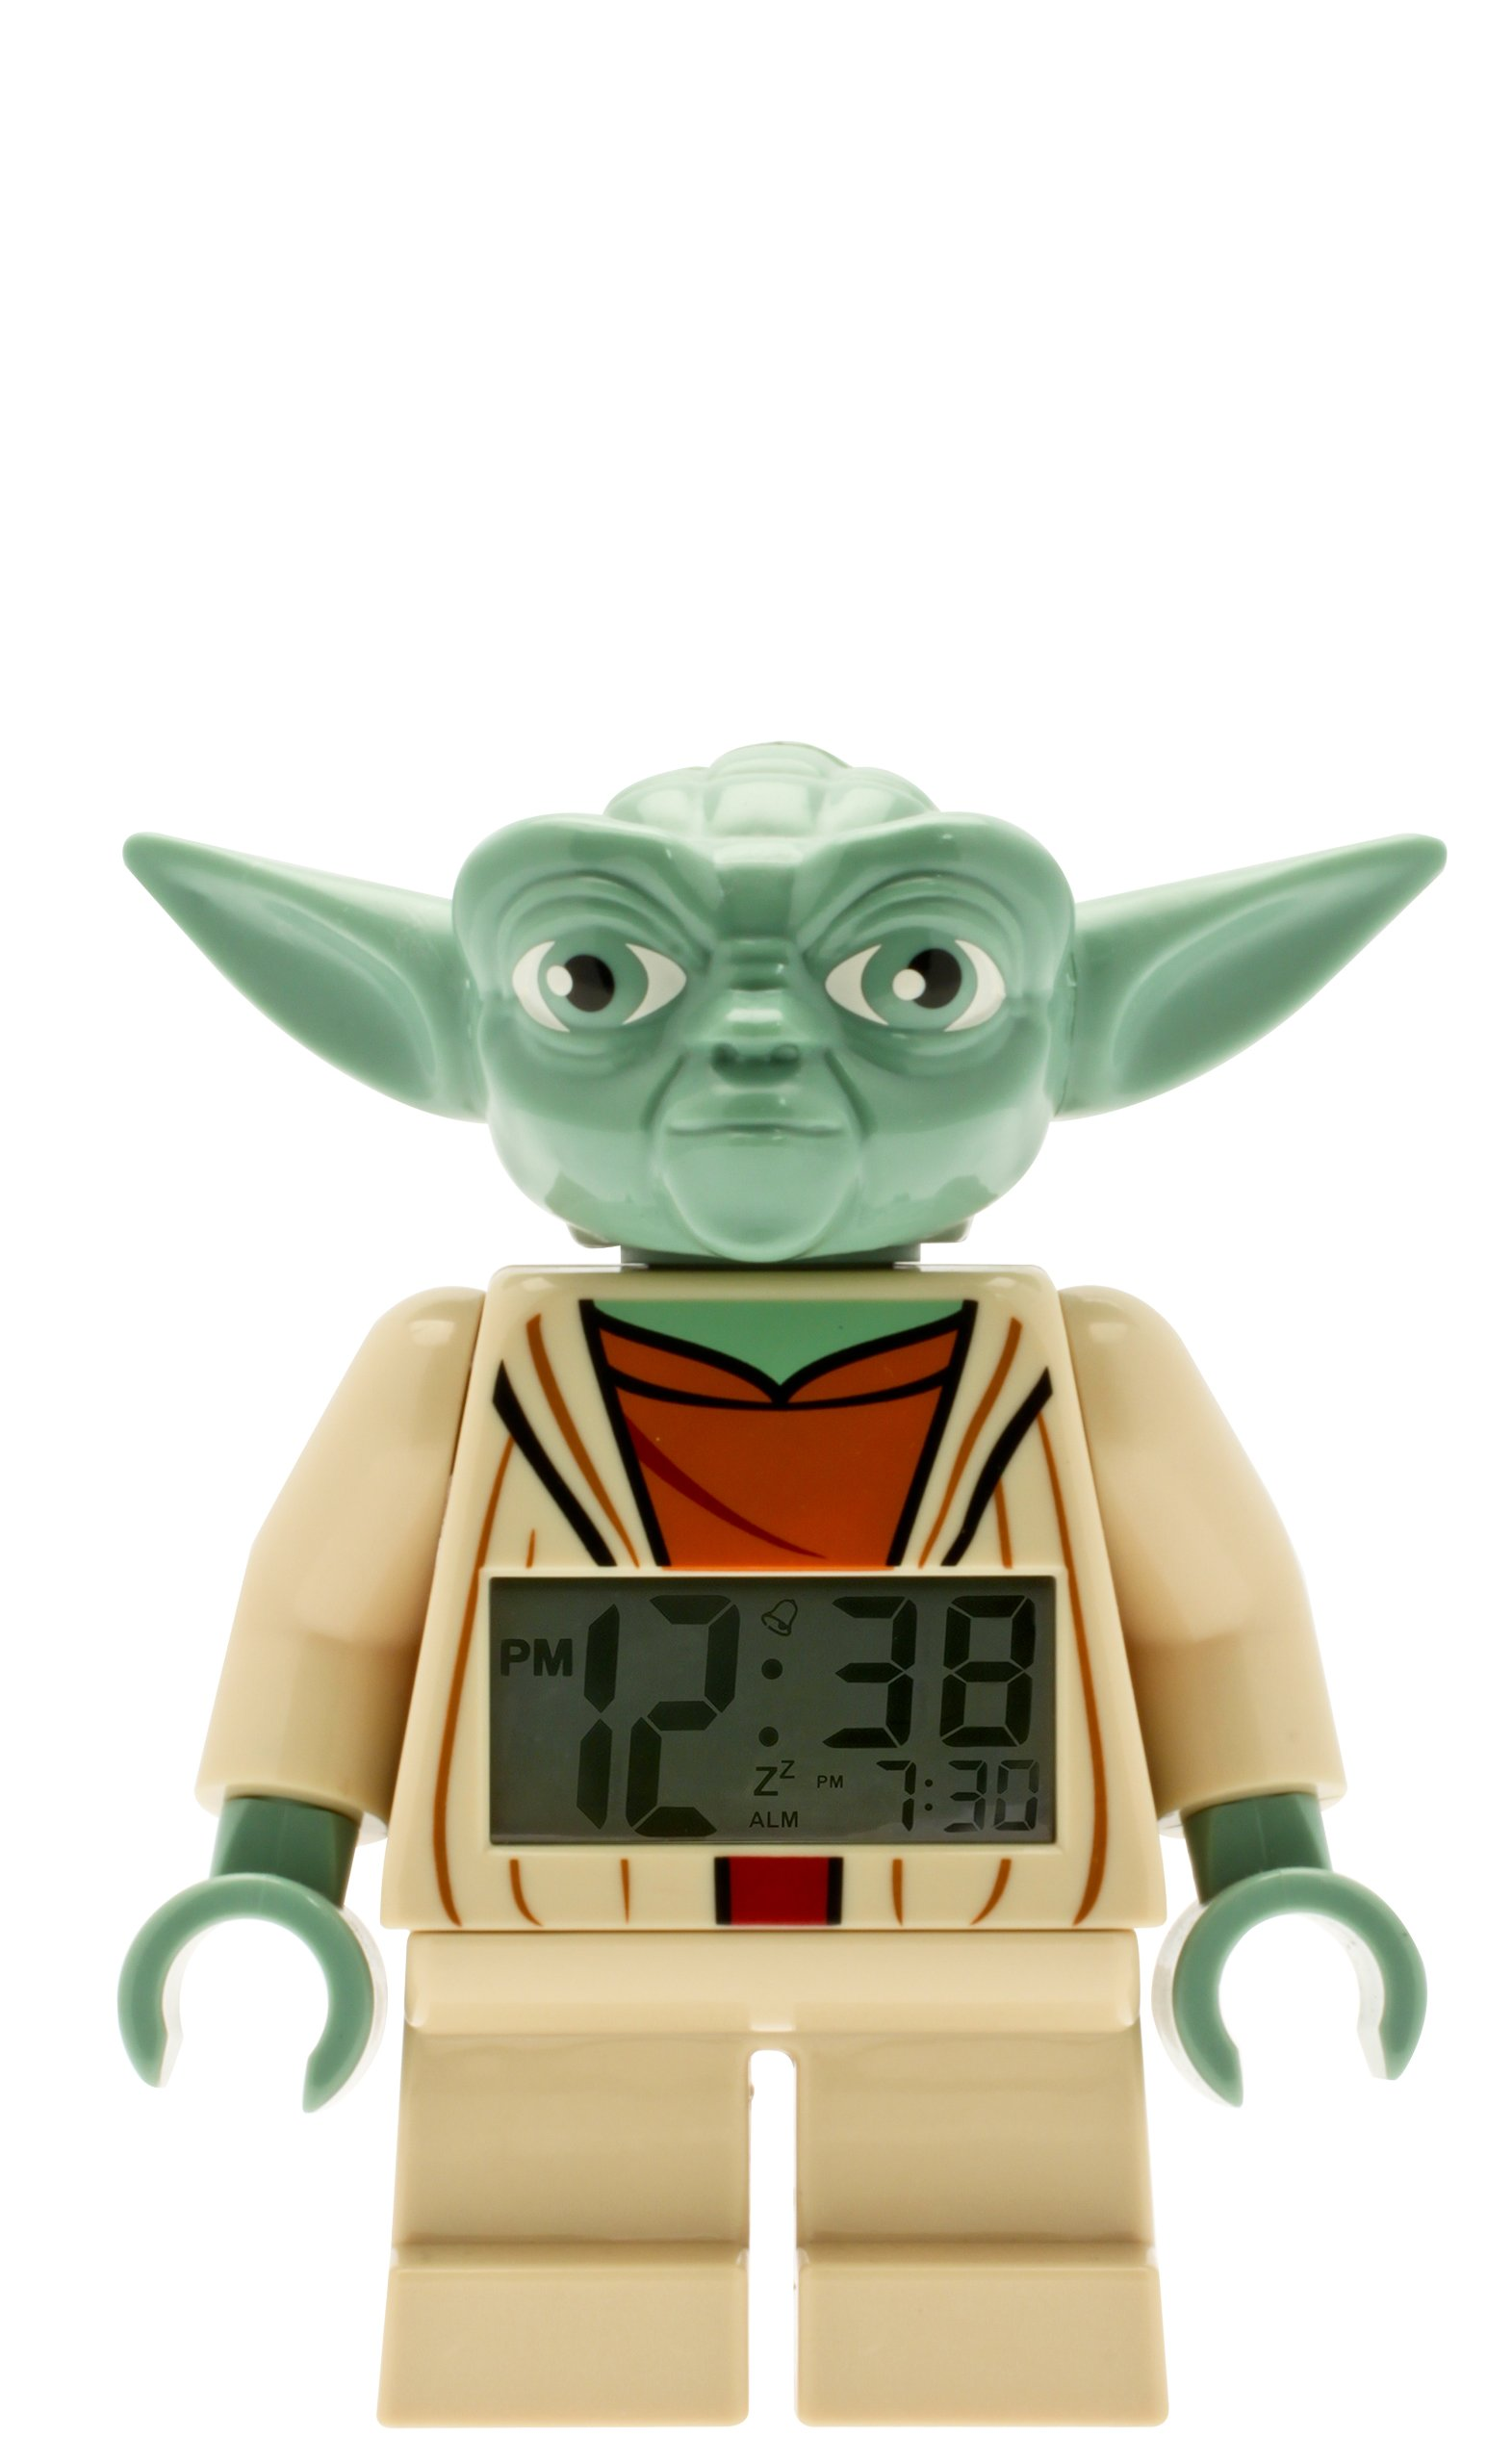 LEGO Star Wars 9003080 Yoda Kids Minifigure Light Up Alarm Clock   green/brown   plastic   7 inches tall   LCD display   boy girl   official